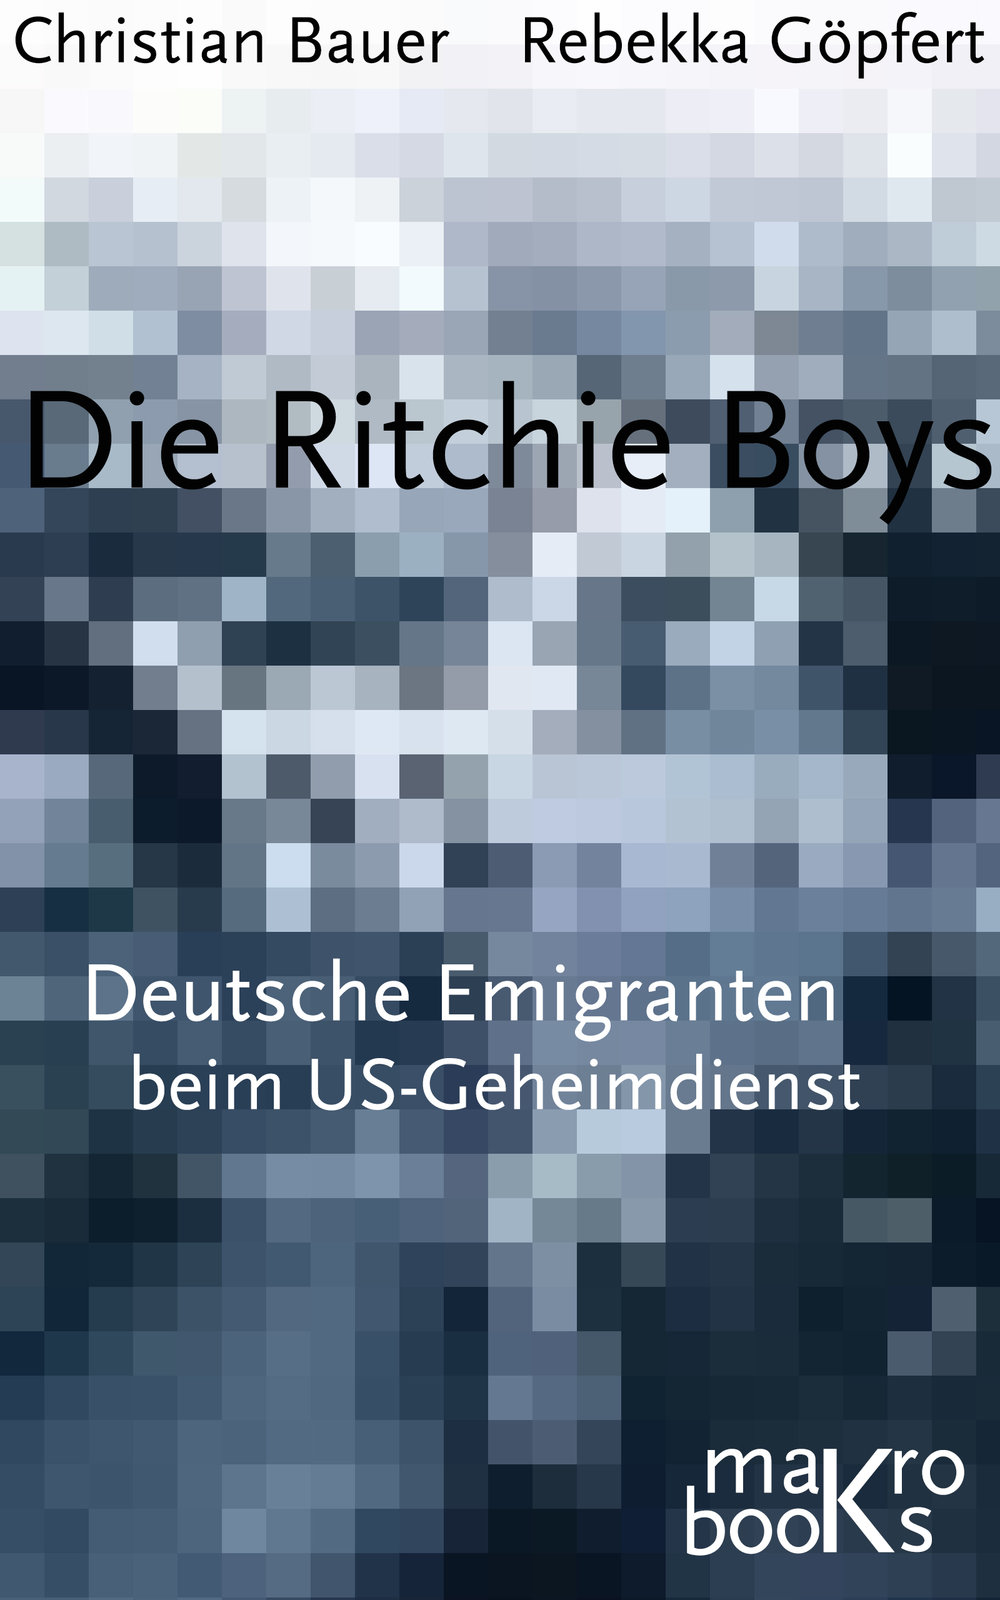 http://www.ebook.de/de/product/25671991/rebekka_goepfert_die_ritchie_boys.html?searchId=275416992